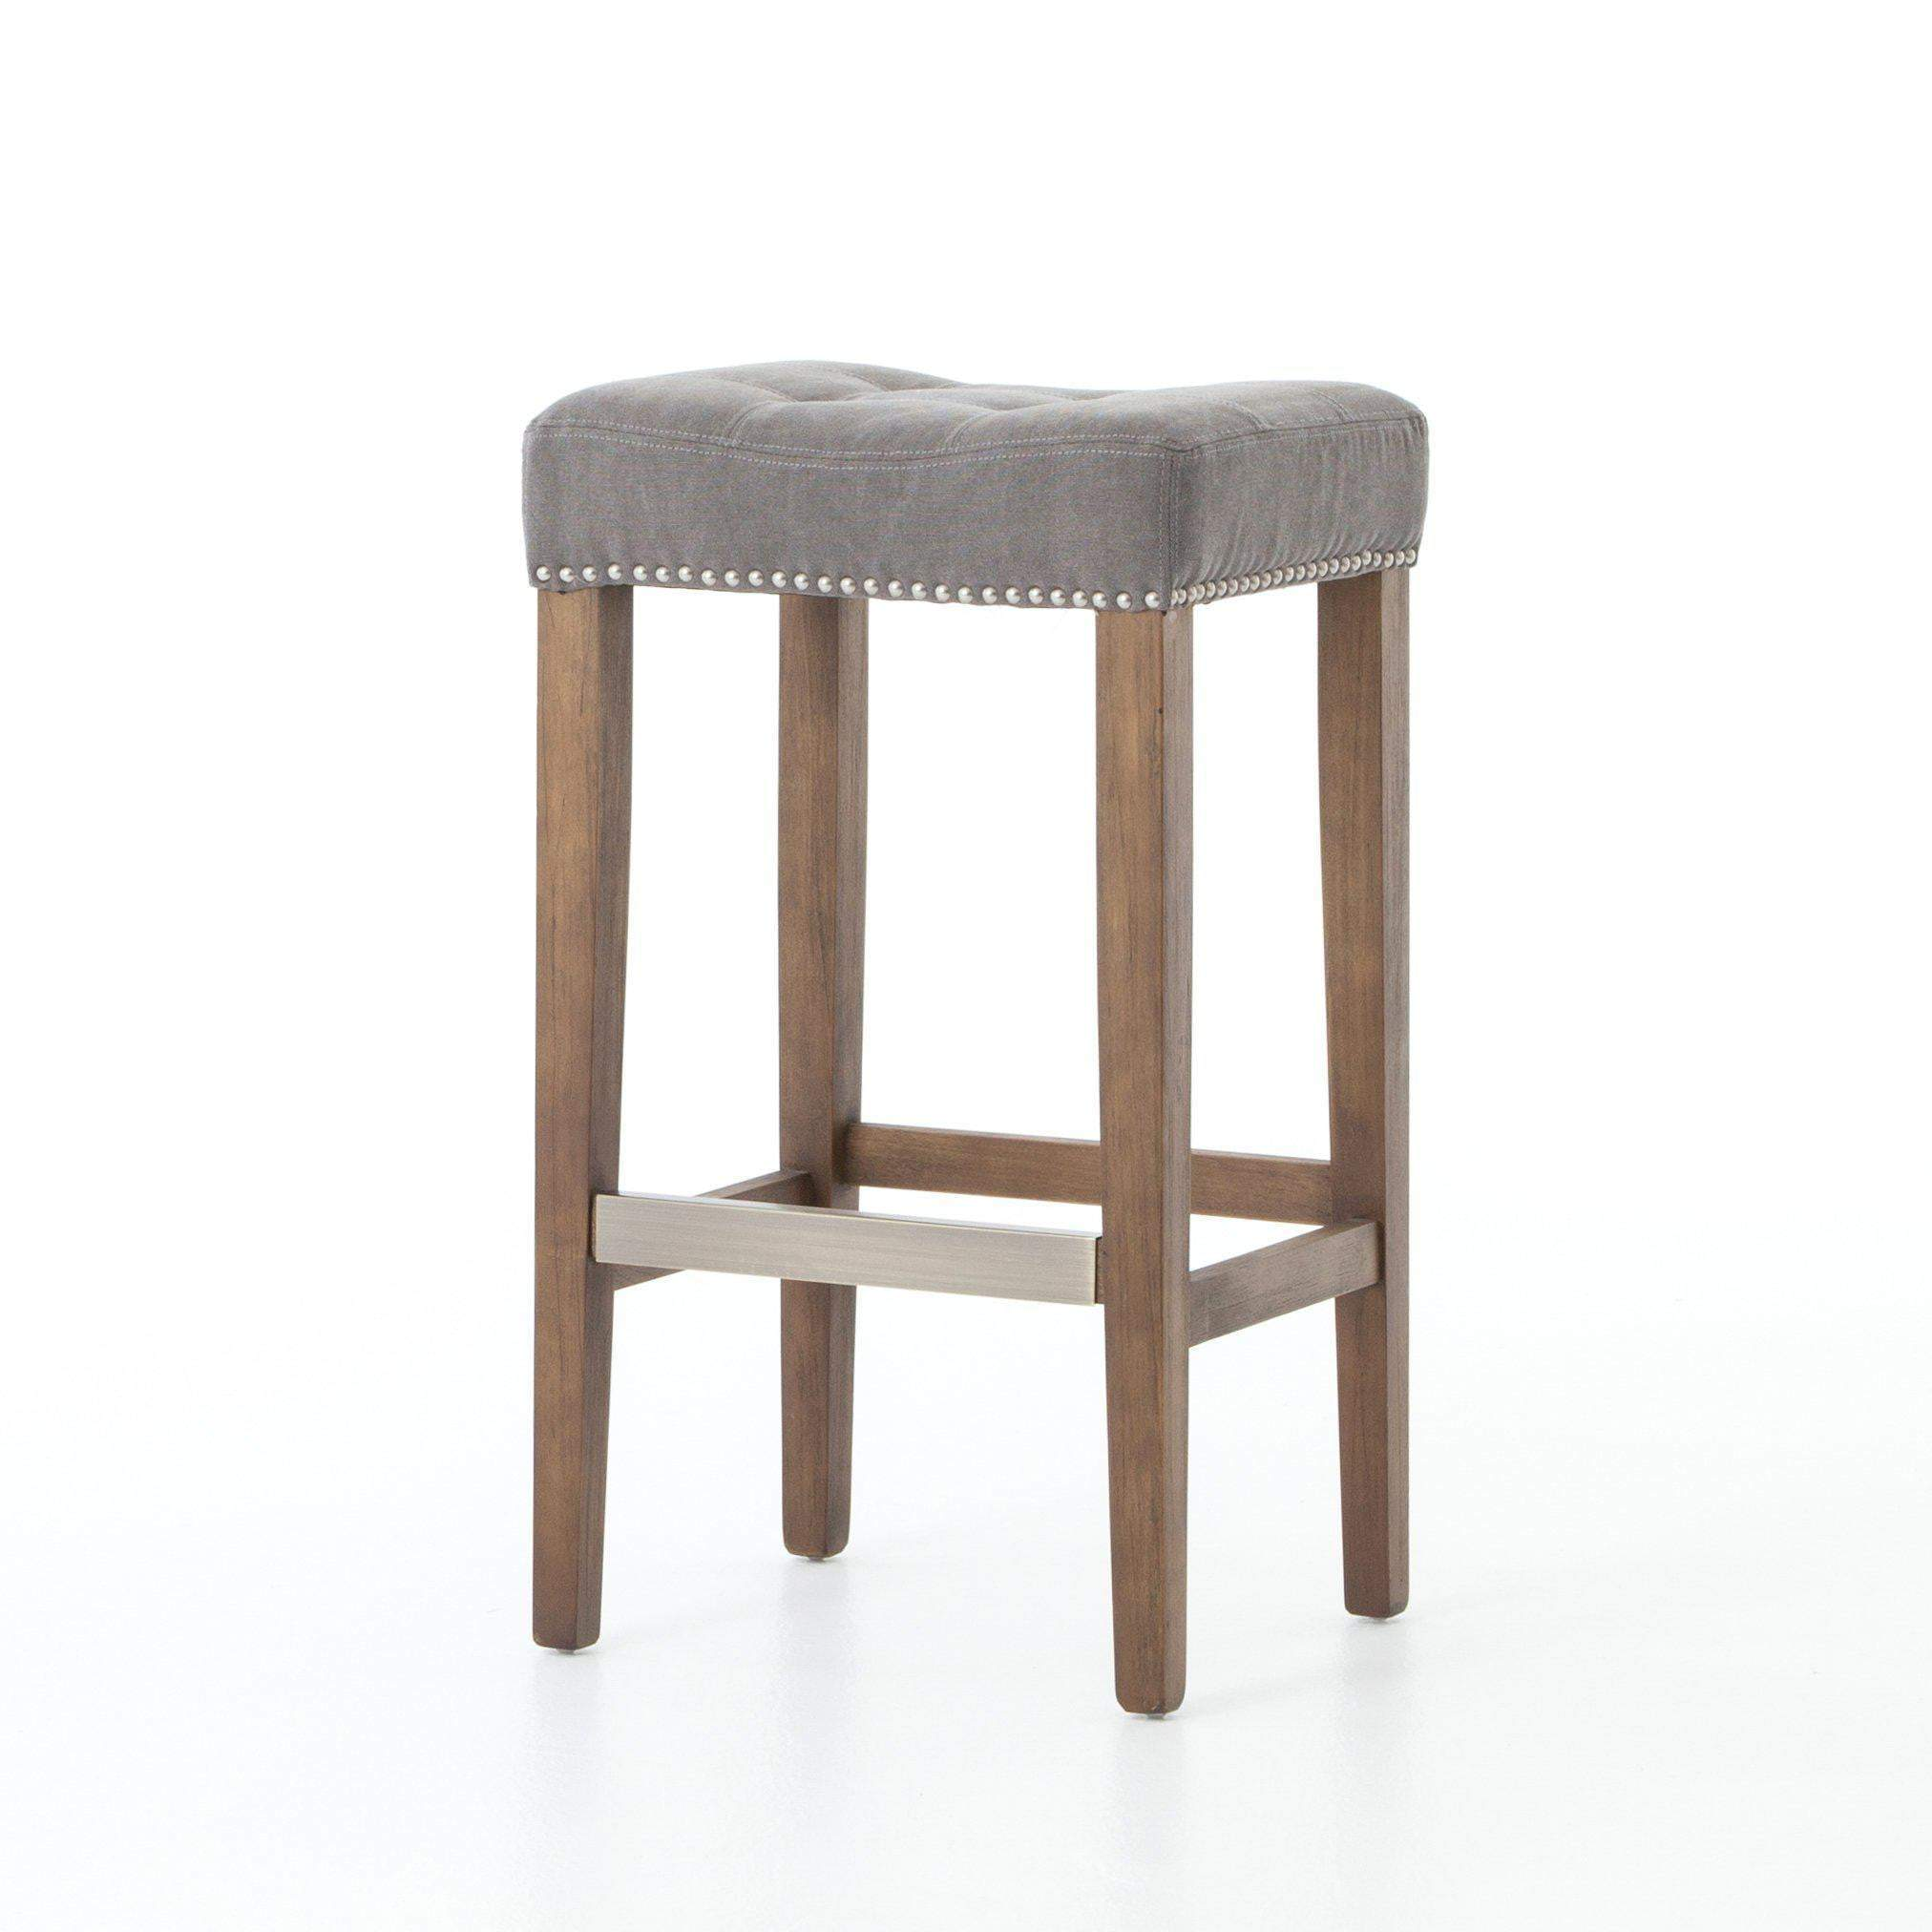 Sean Bar & Counter Stool with Kickplate (Dark Moon Canvas) - Ashford - Parker Gwen